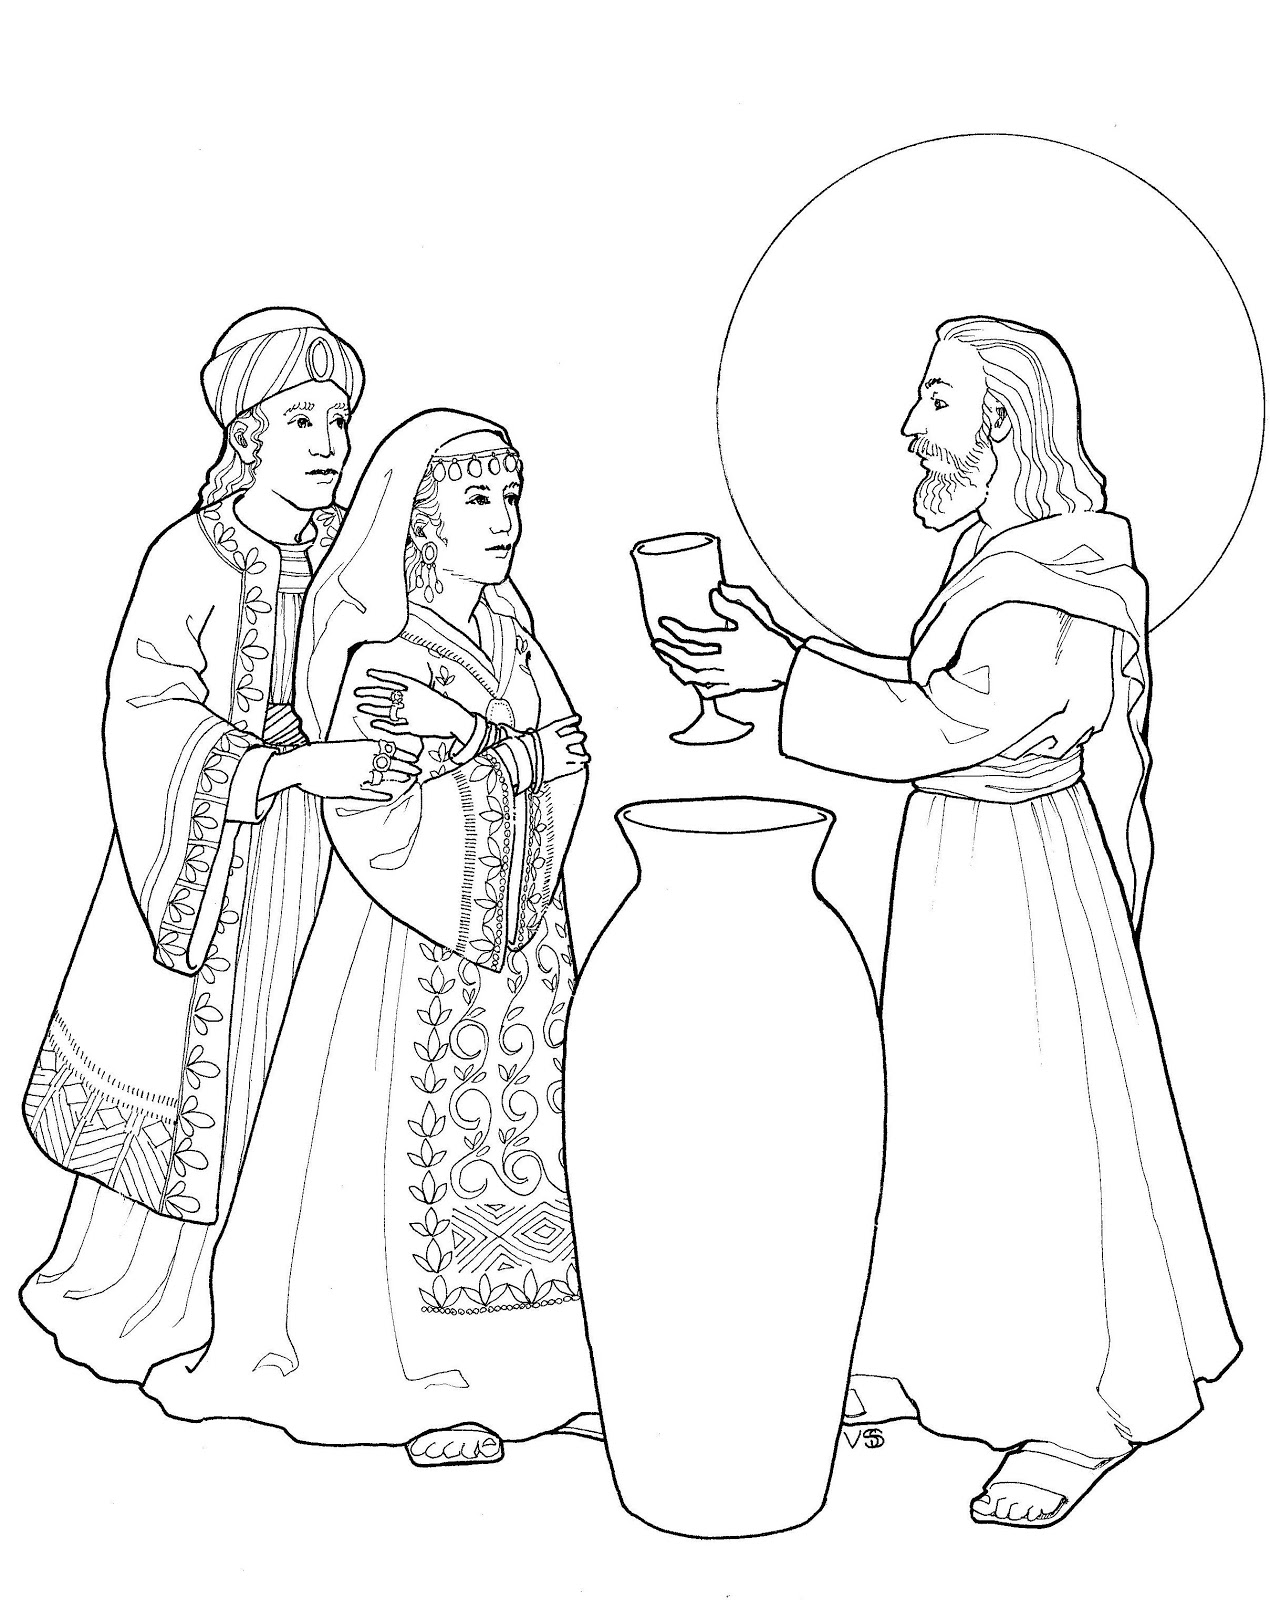 wedding at cana coloring pages | Make a joyful color: Line work